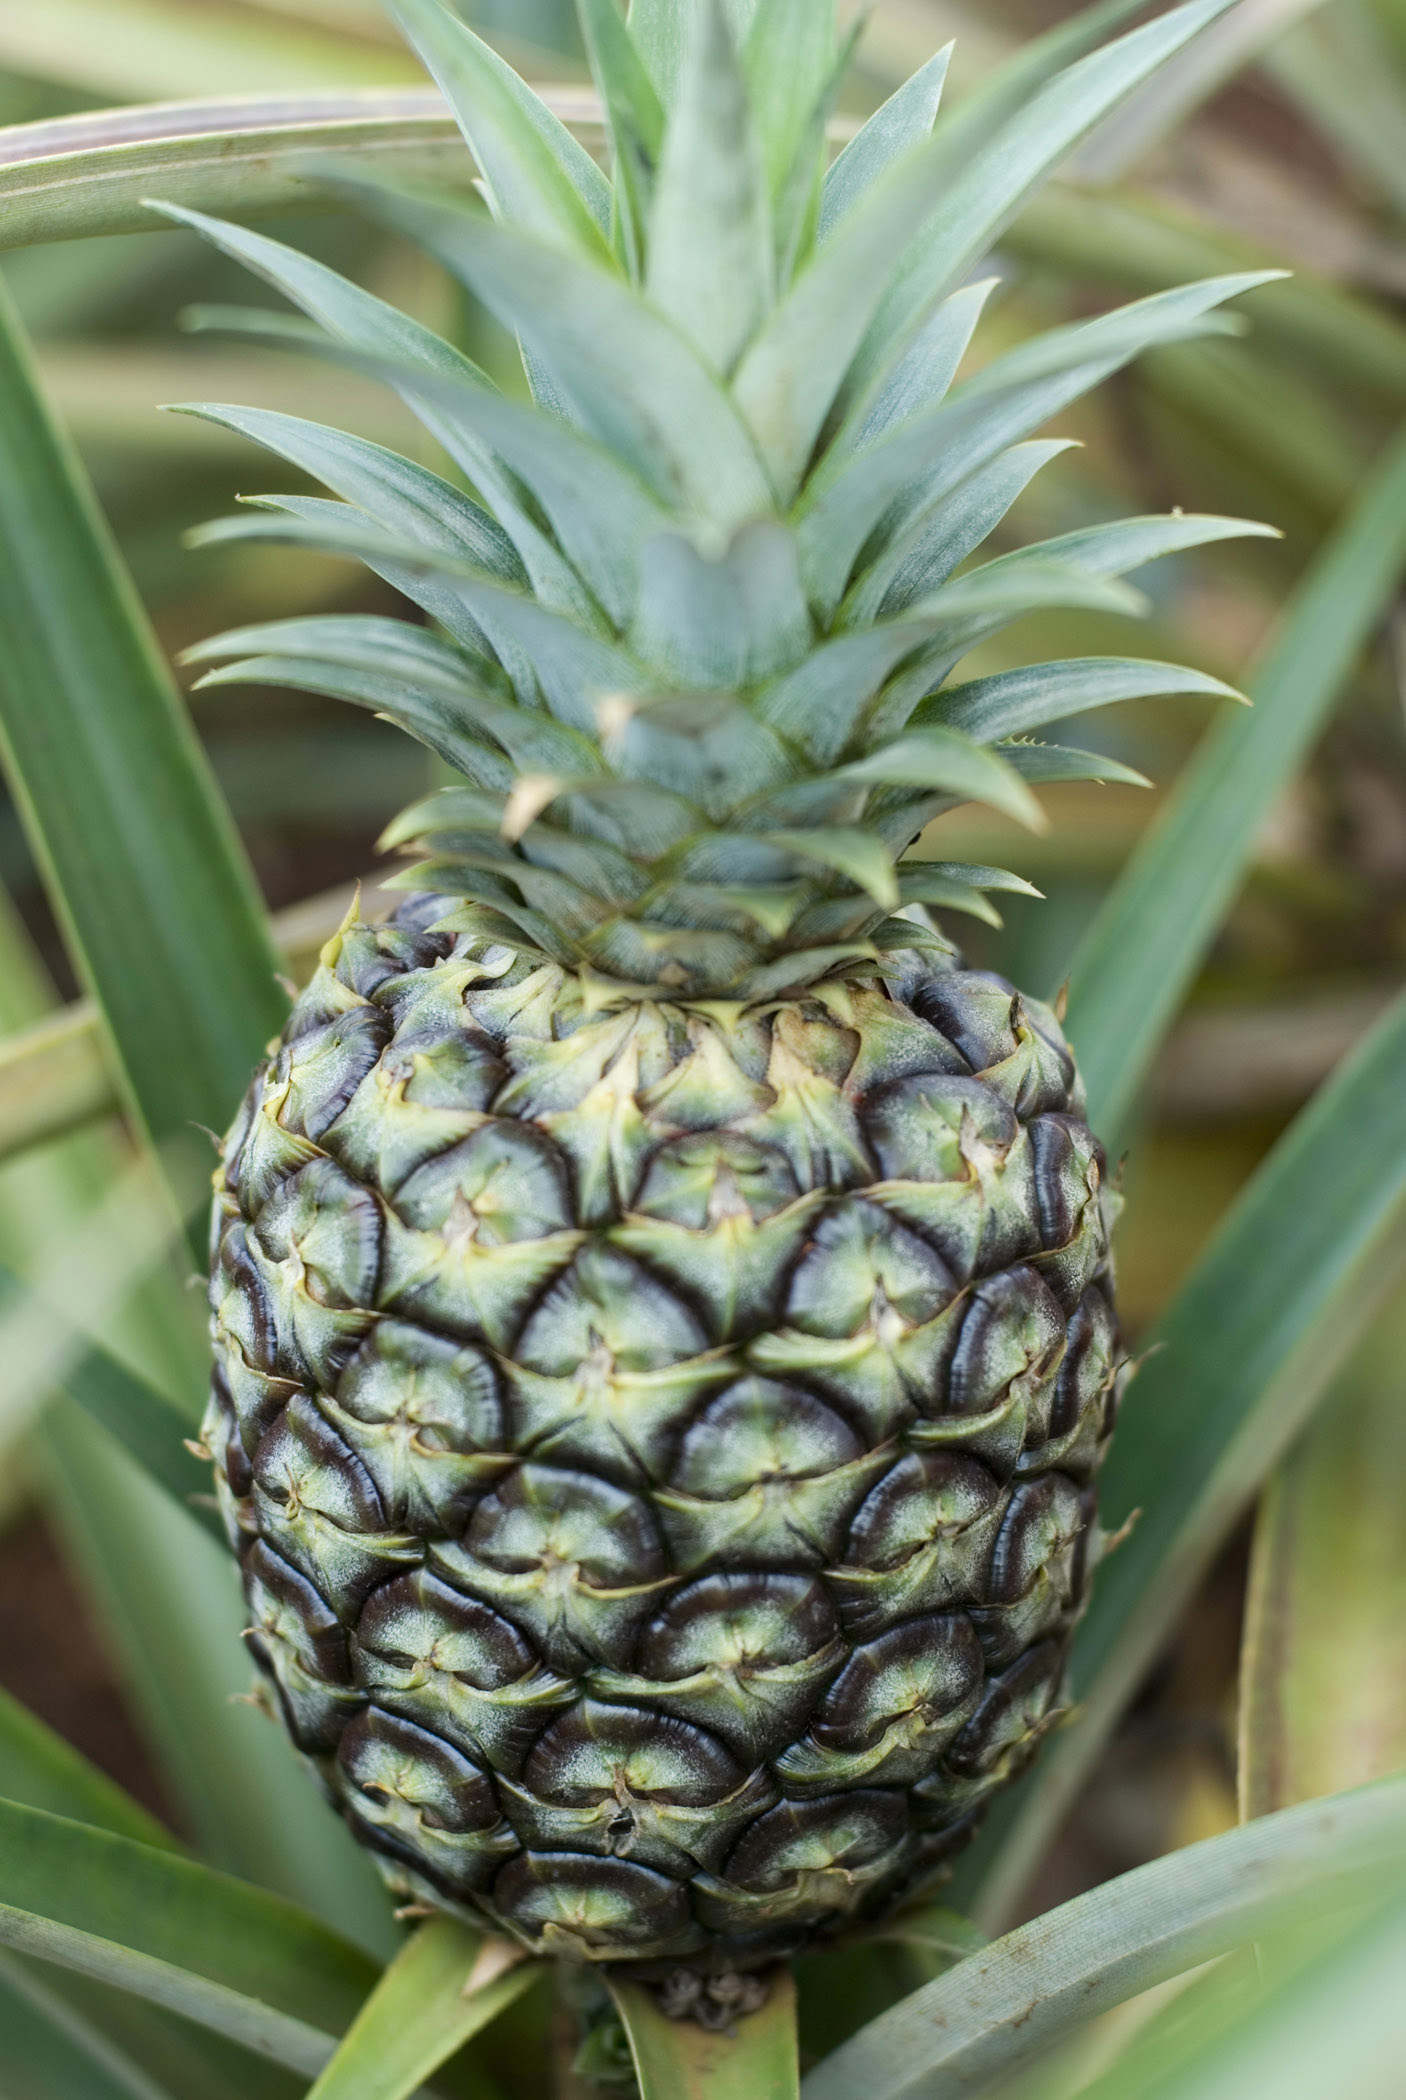 Close up high angle view of a large fresh tropical pineapple growing on a plant amongst sword-like leaves